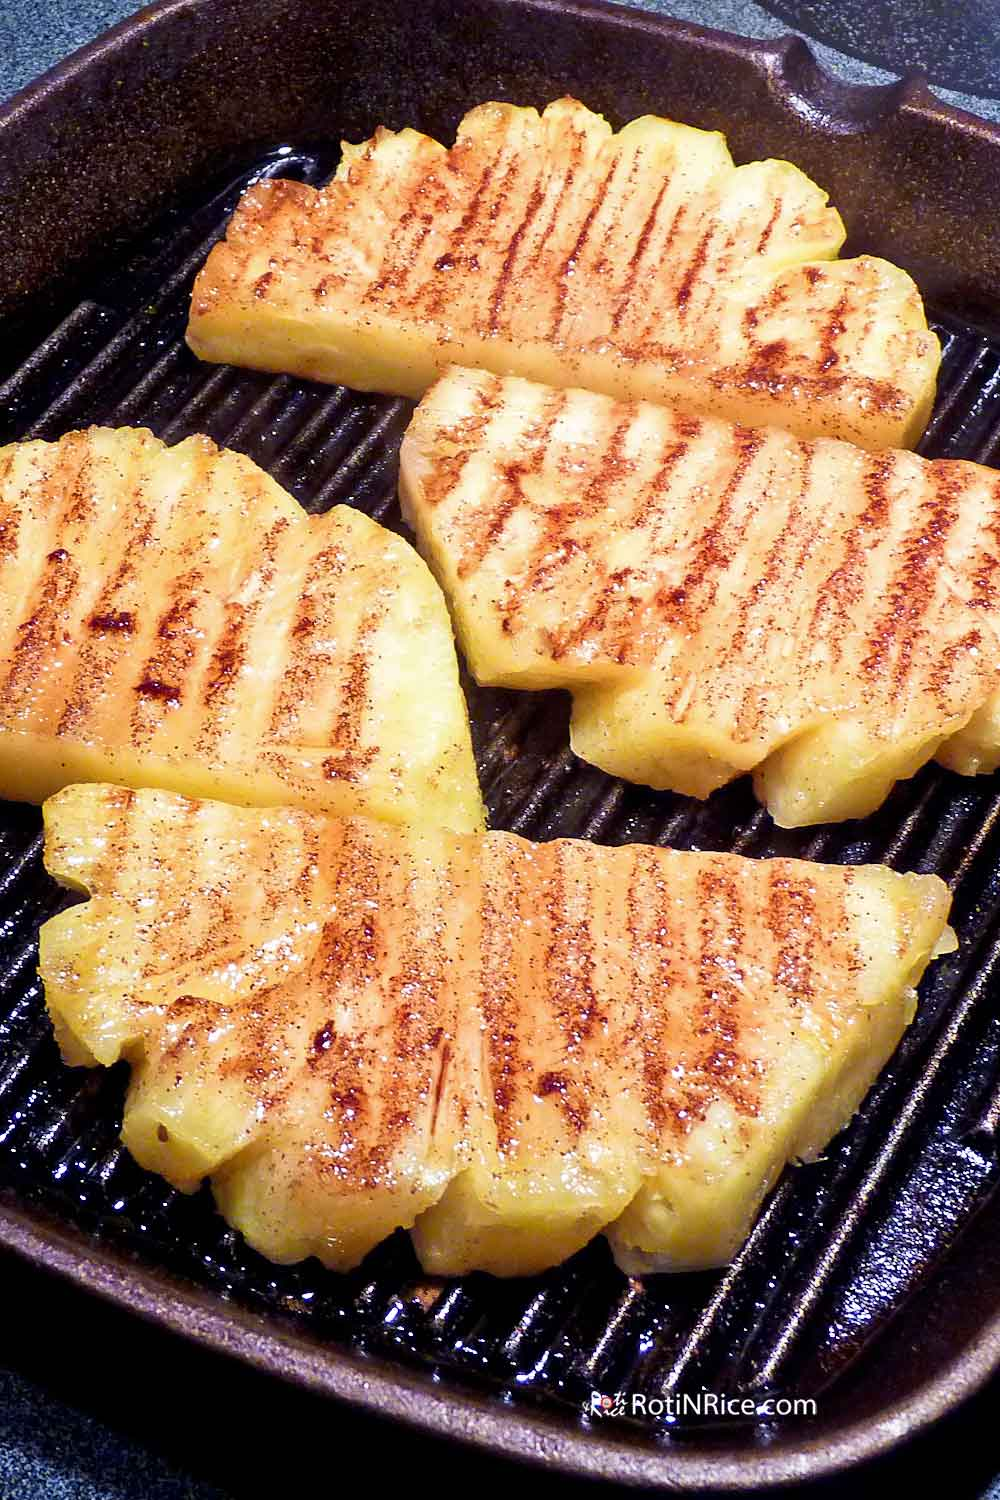 Grilled Pineapple in a cast iron grill pan.